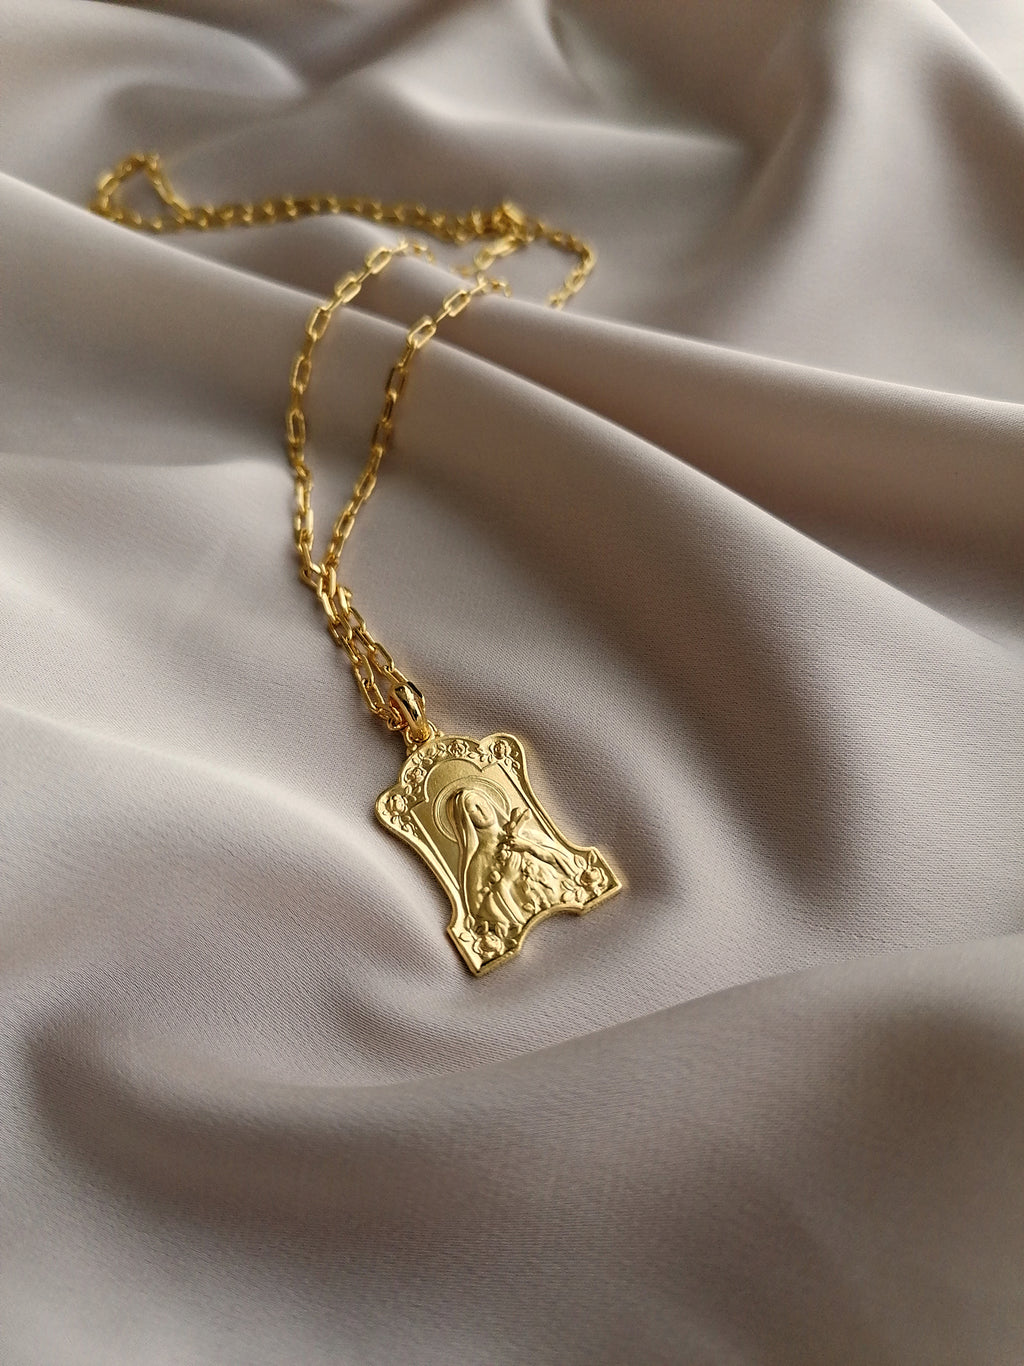 ST TERESA NECKLACE